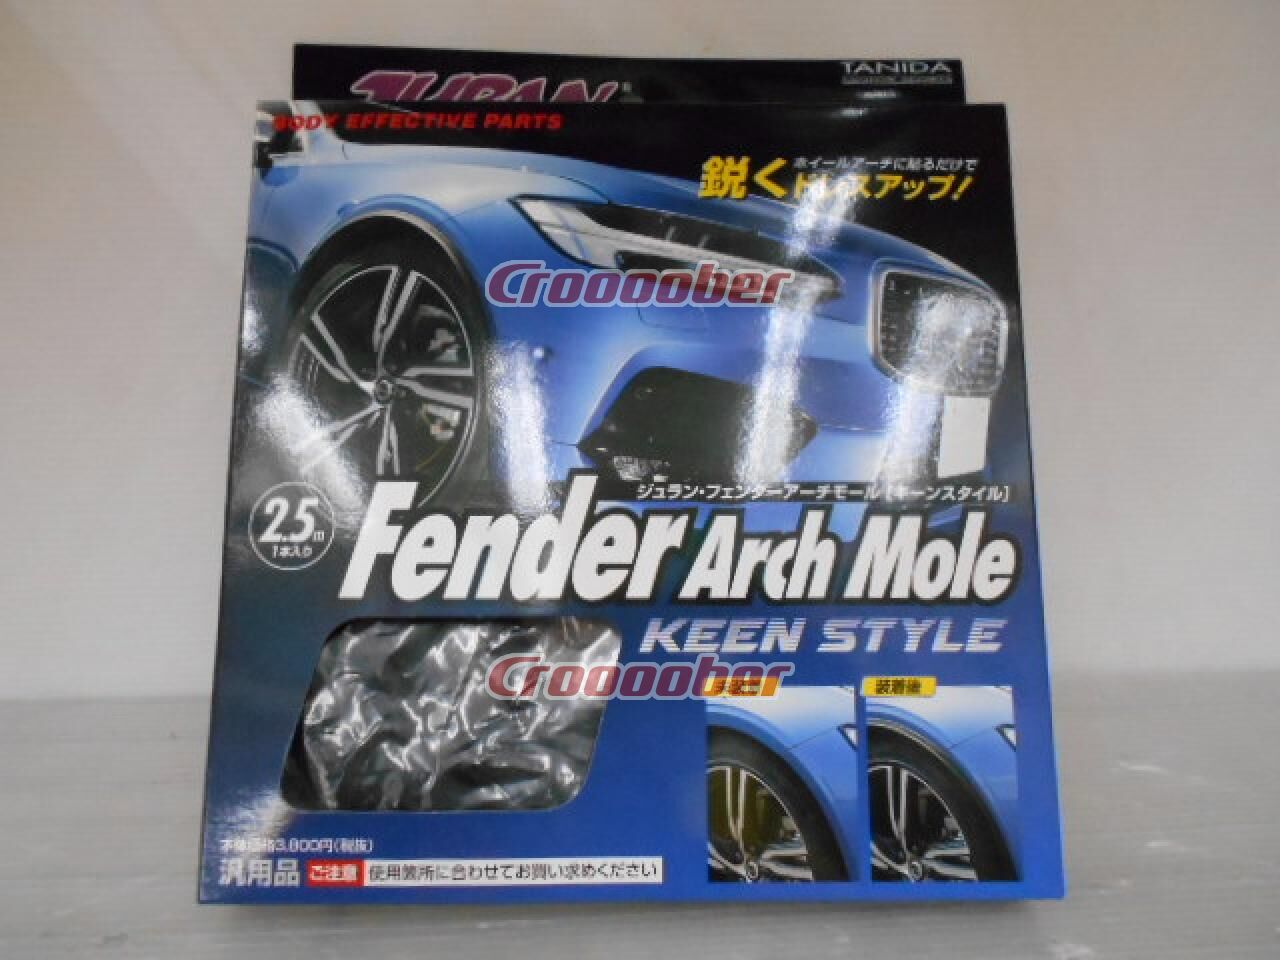 Juran Fender Arch Mall Keen Style Body Parts Accessories